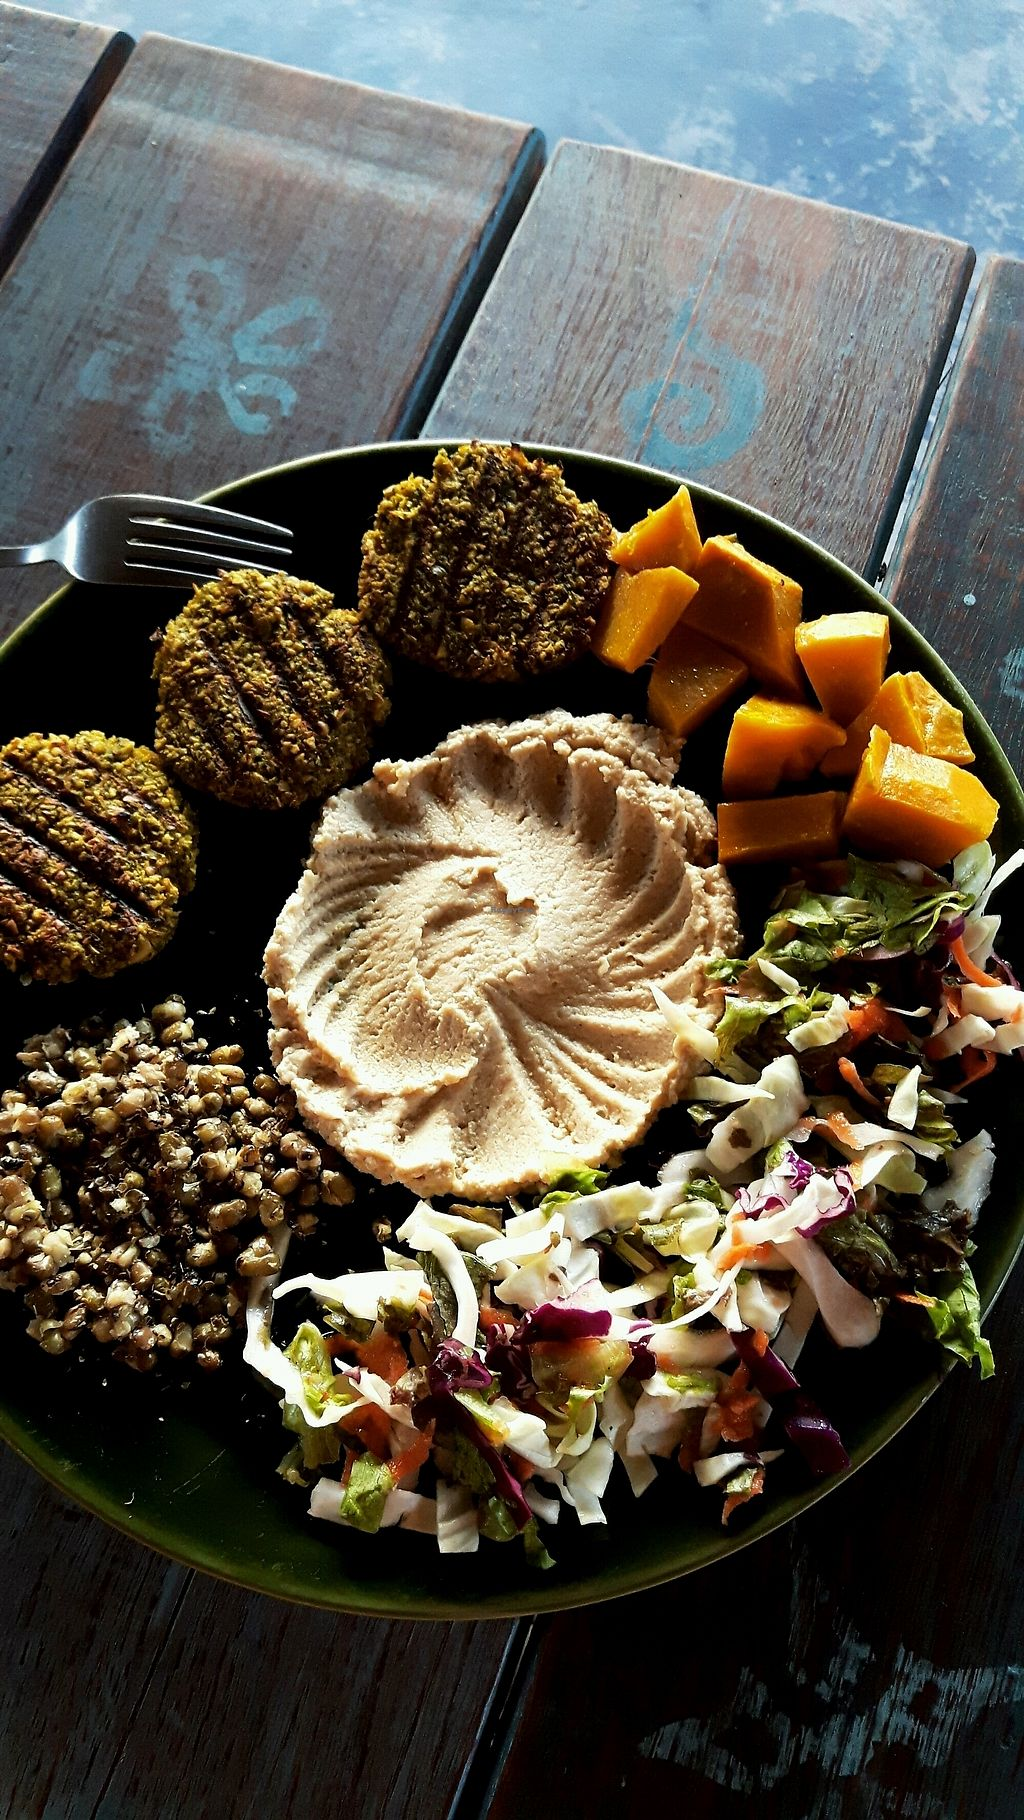 "Photo of Akasha Home Restaurant  by <a href=""/members/profile/CharityBosua"">CharityBosua</a> <br/>Falafel and hummus plate with extra pumpkin <br/> March 4, 2018  - <a href='/contact/abuse/image/53254/366636'>Report</a>"